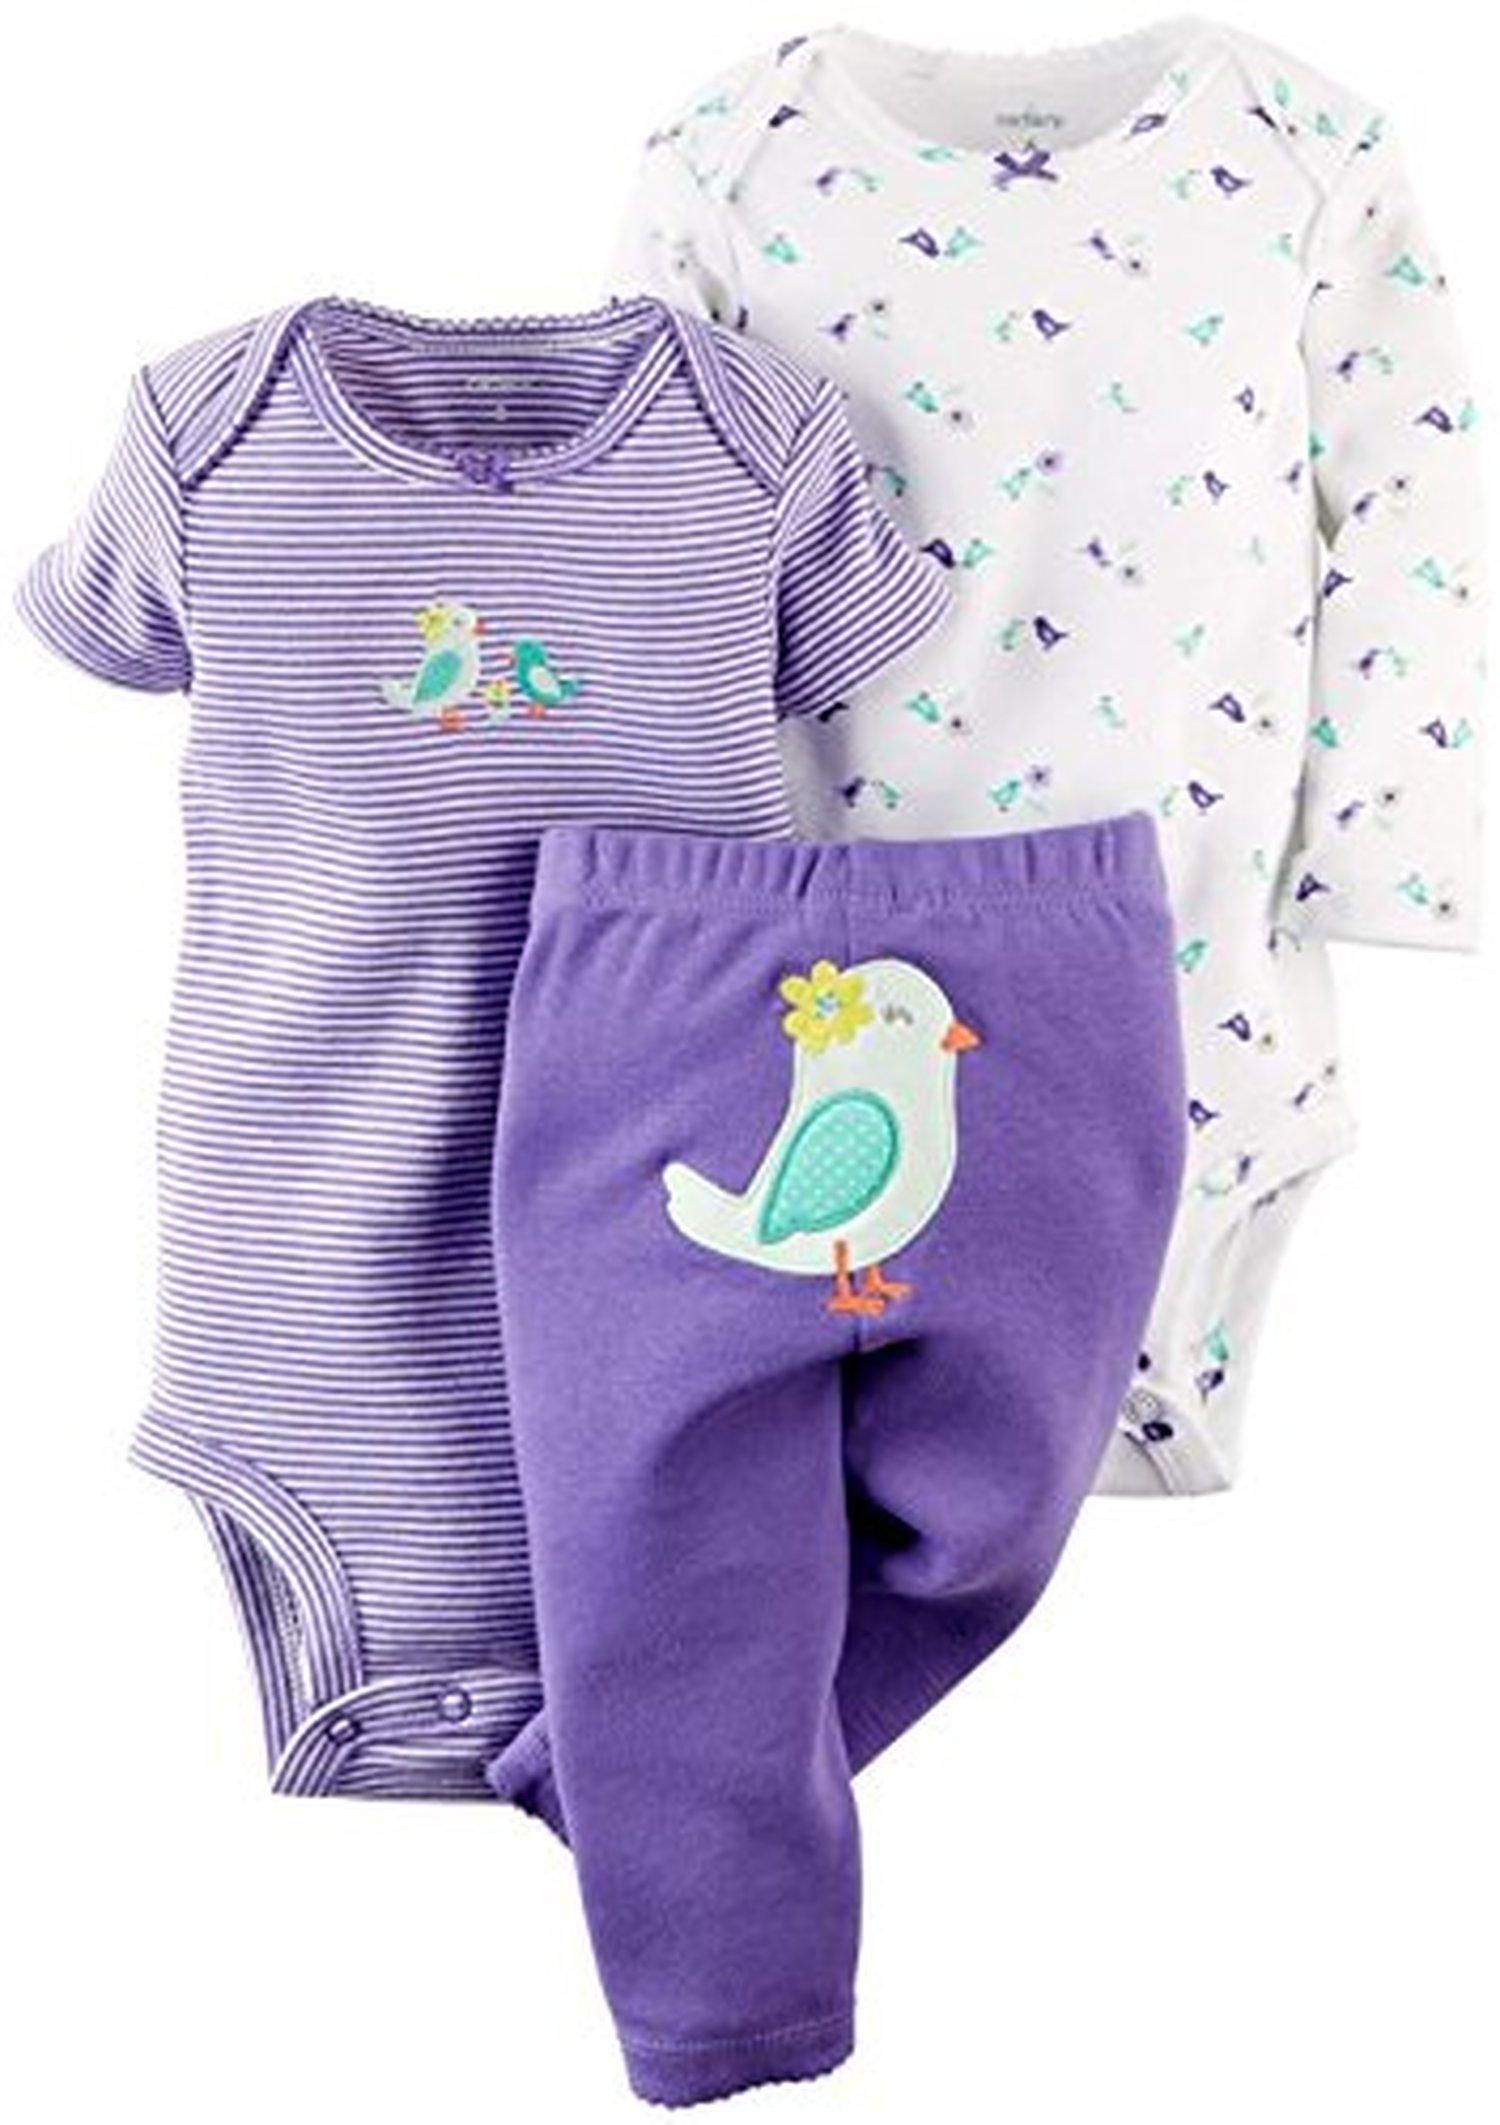 4be6f9d22 Carter's Baby Girls' 3 Piece Take Me Away Set (Baby) - Bird - 6M - Brought  to you by Avarsha.com